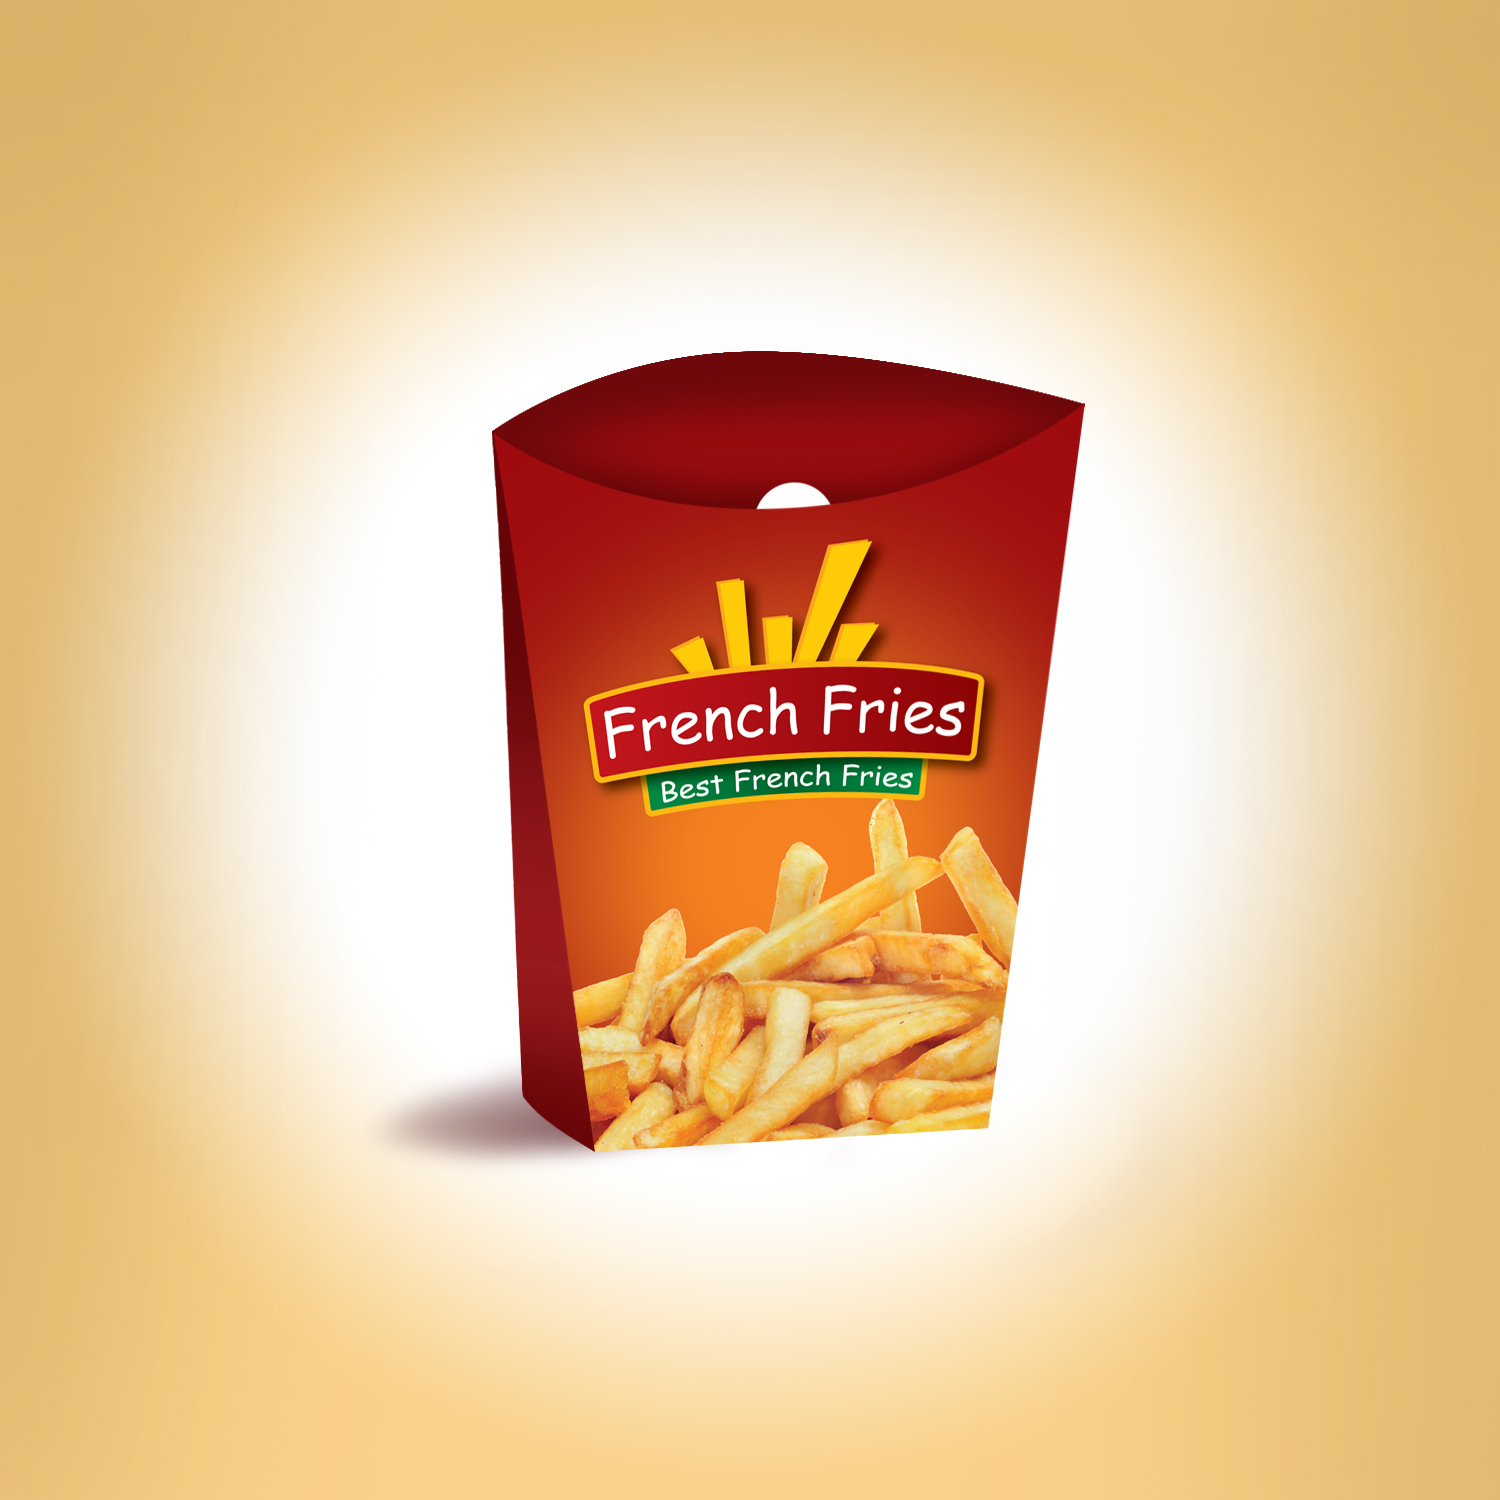 French Fries Packaging Template and Logo | We Design Packaging